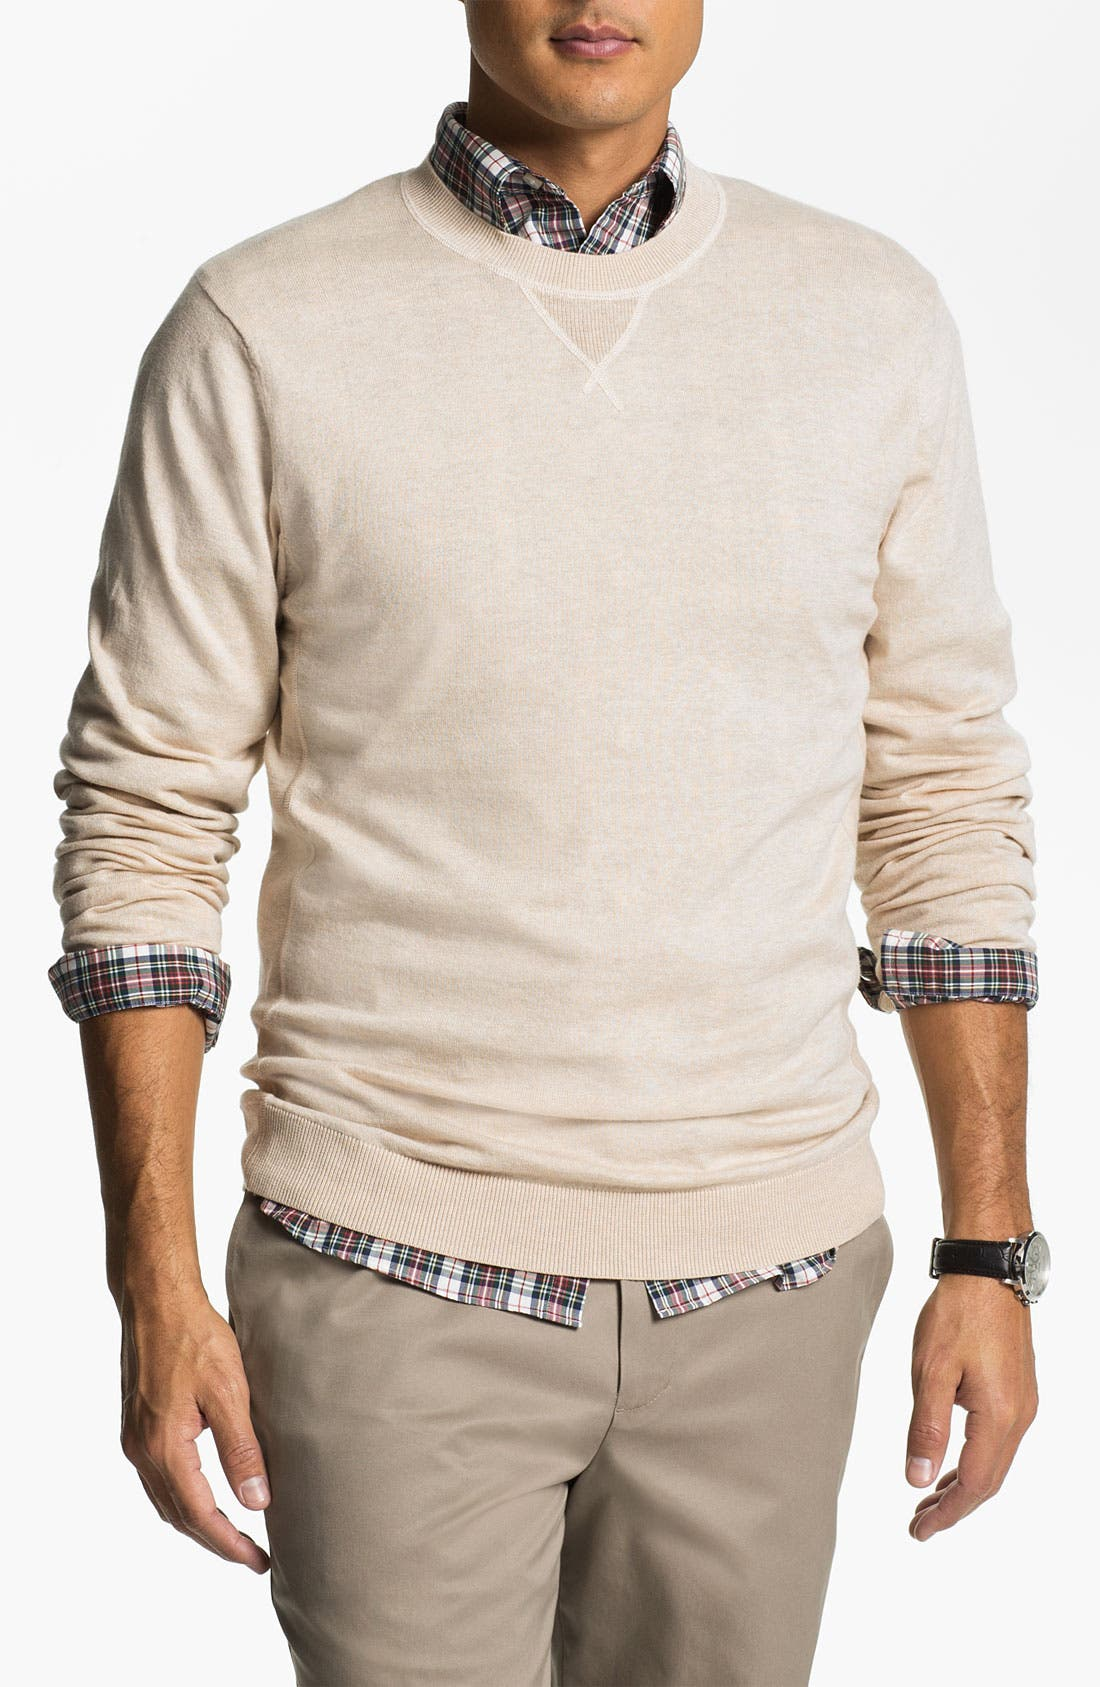 Alternate Image 1 Selected - Wallin & Bros. Pima Cotton Blend Sweater